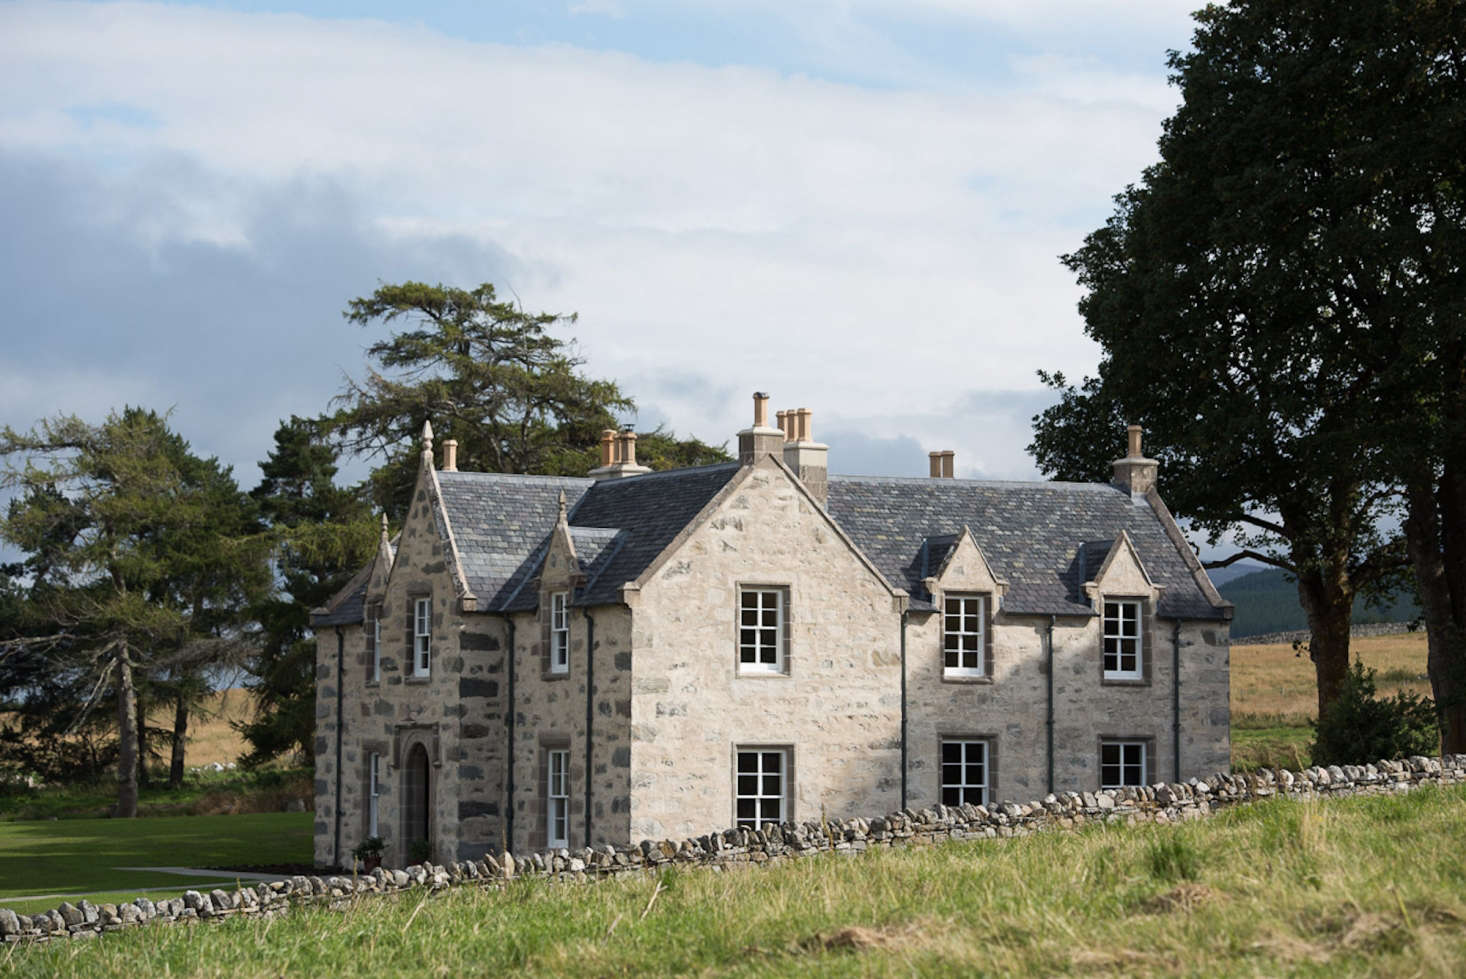 The main farmhouse dates to 00; the owner commissioned architectNicholas Groves-Raines, a specialist in refurbishing old buildings, to bring the structure into the